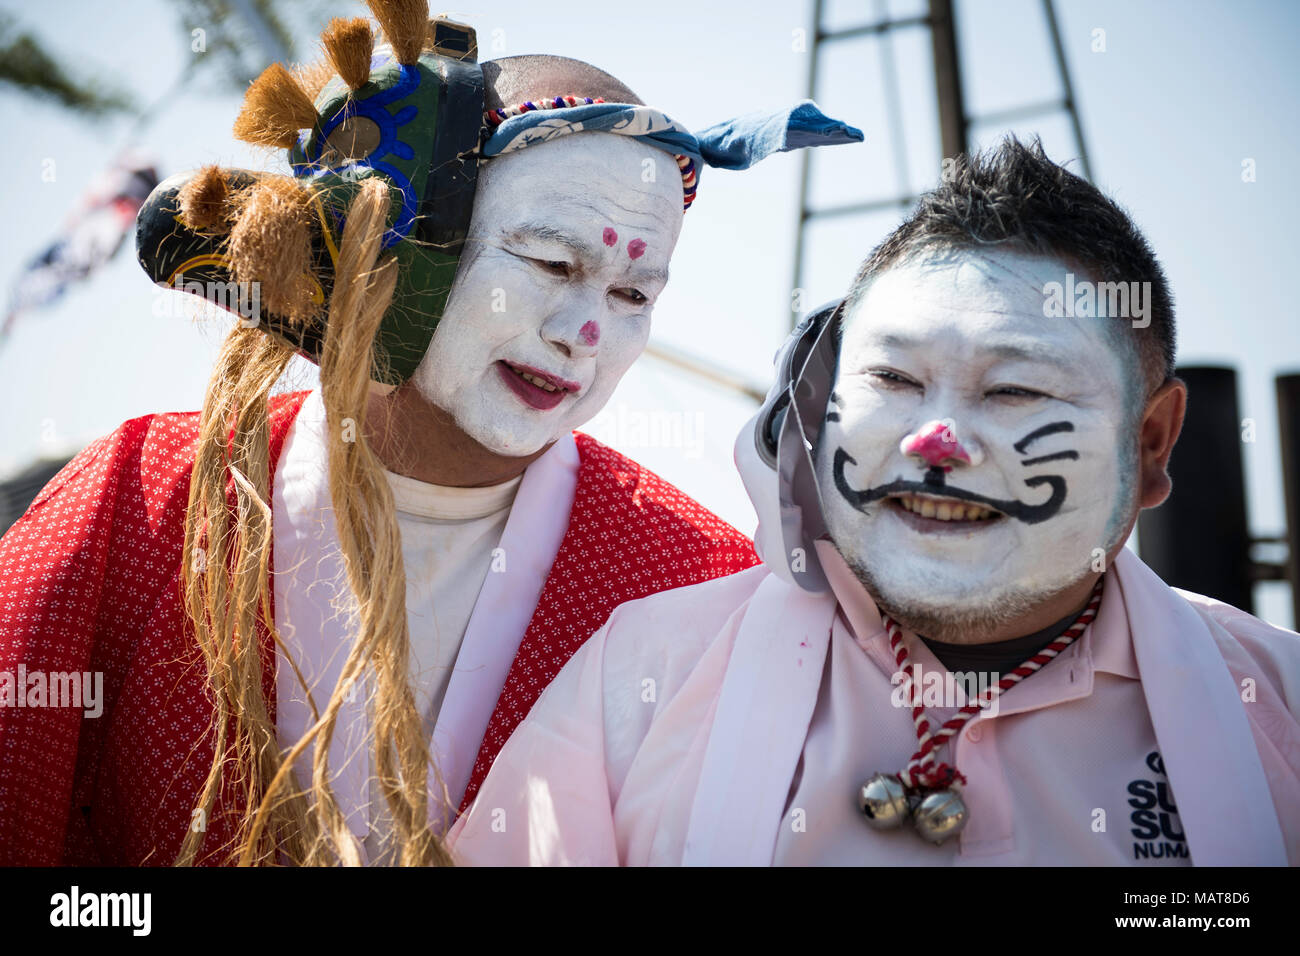 NUMAZU, JAPAN - APRIL 4: Local fishermen with their faces painted posed for a photo during Ose Matsuri/festival held at the Uchiura fishing port, in Osezaki district of Numazu, Shizuoka Prefecture on April 4, 2018, Japan.  good catches. The custom is said originated from a local Credit: Aflo Co. Ltd./Alamy Live News - Stock Image